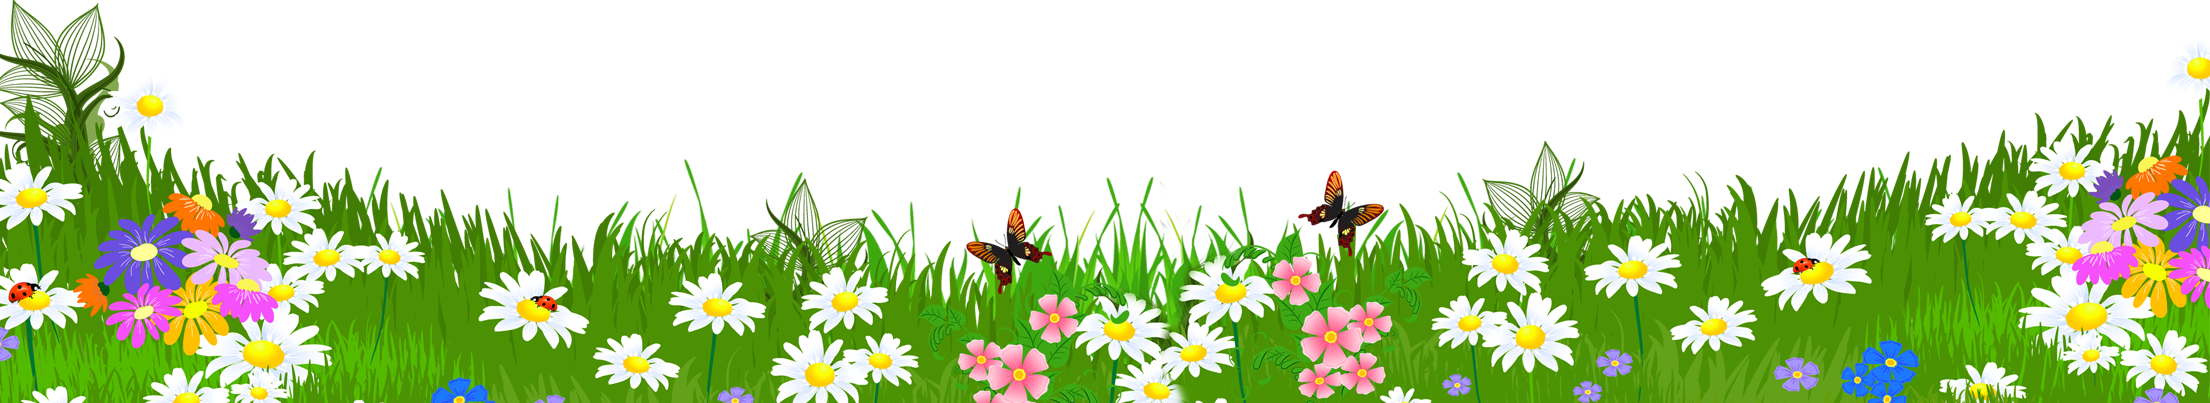 Environment clipart border. Grass background png